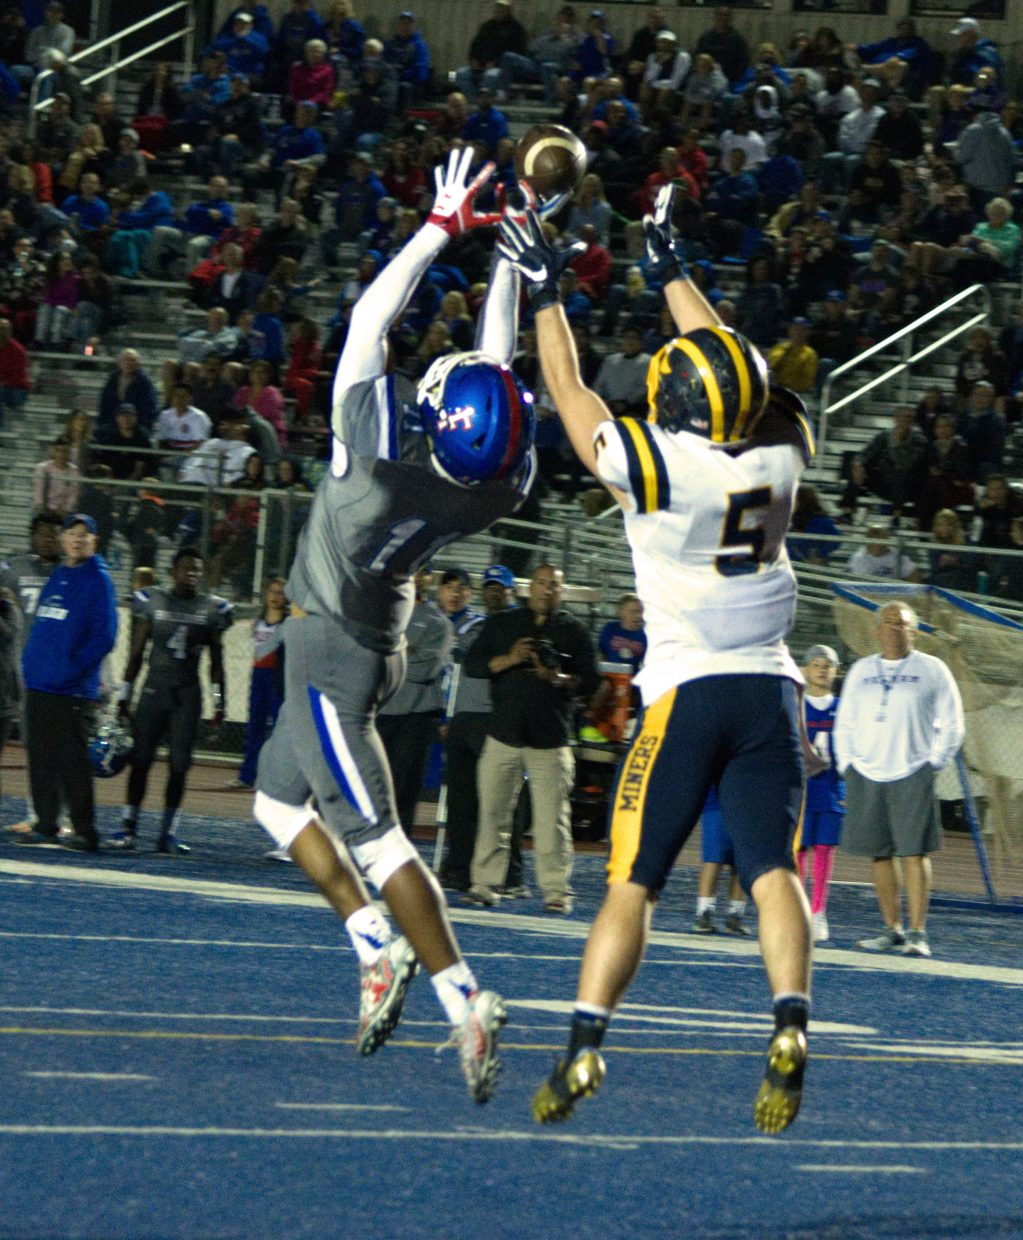 Nevada Union's Tyler Nielson battles for a pass during a game against Folsom. The pass would fall incomplete.